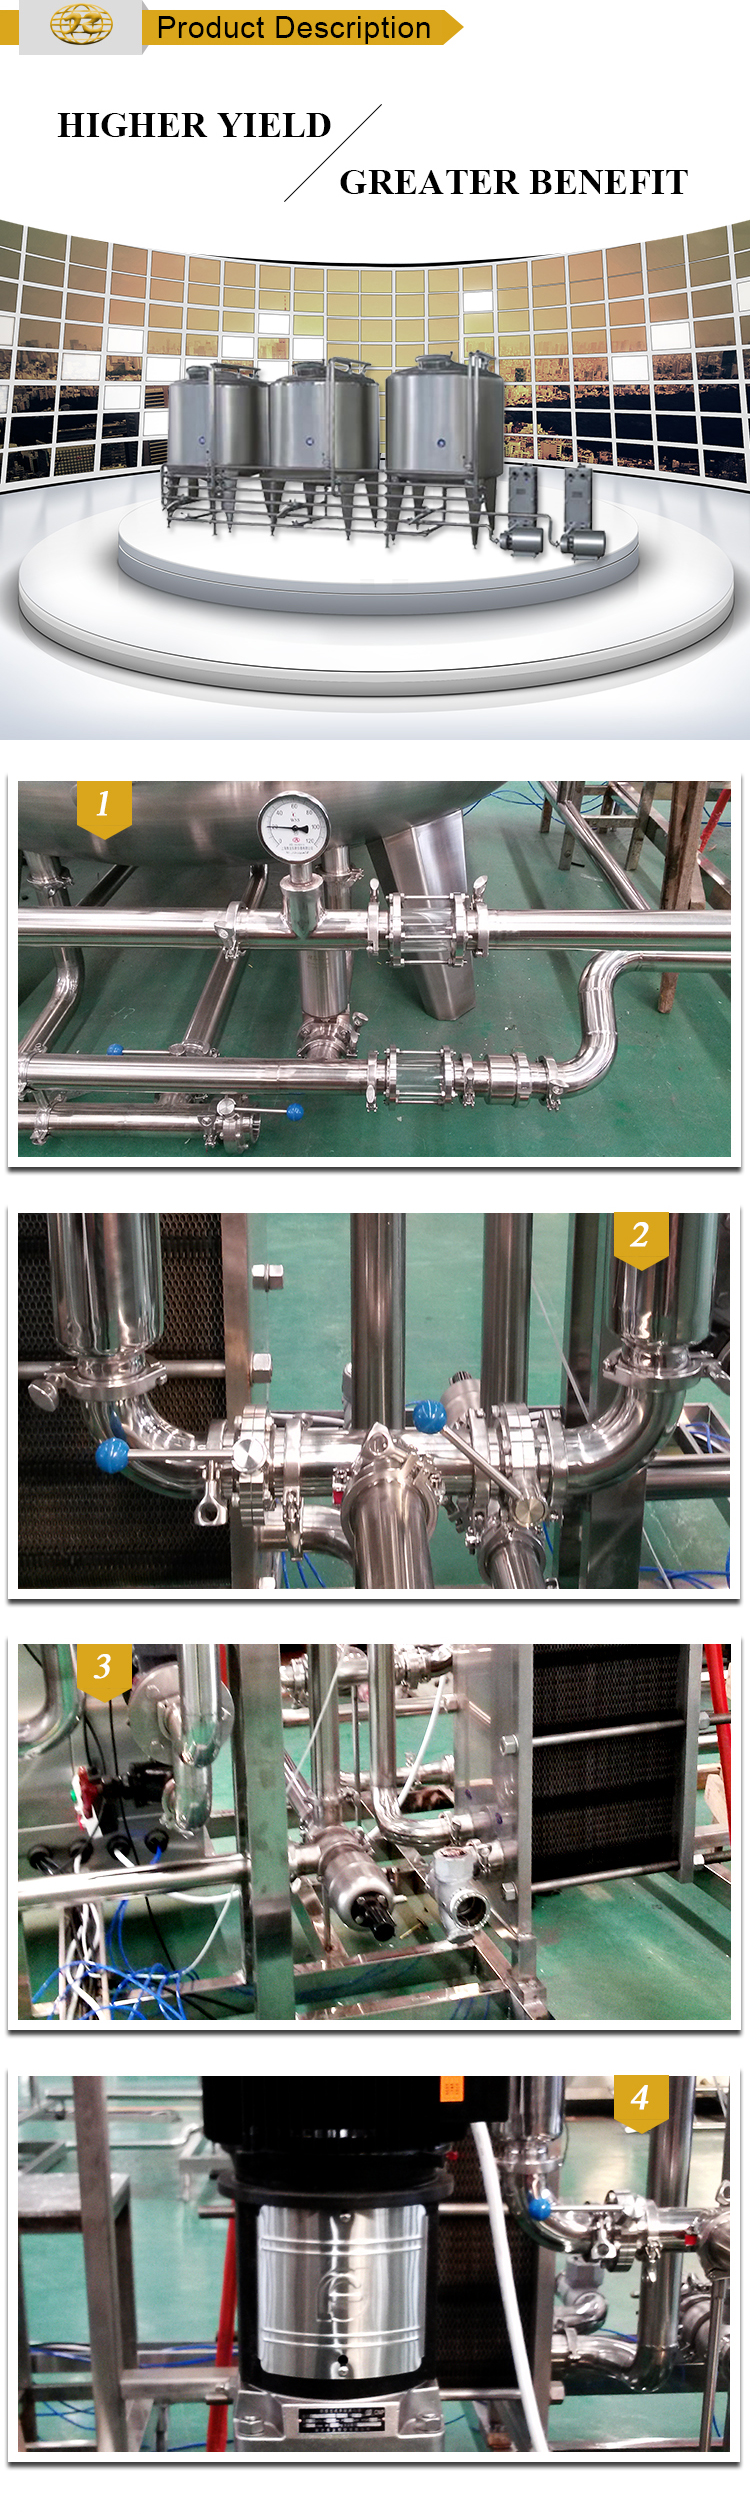 Customized stainless steel high quality automatic Liquid Cleaning cip system machine